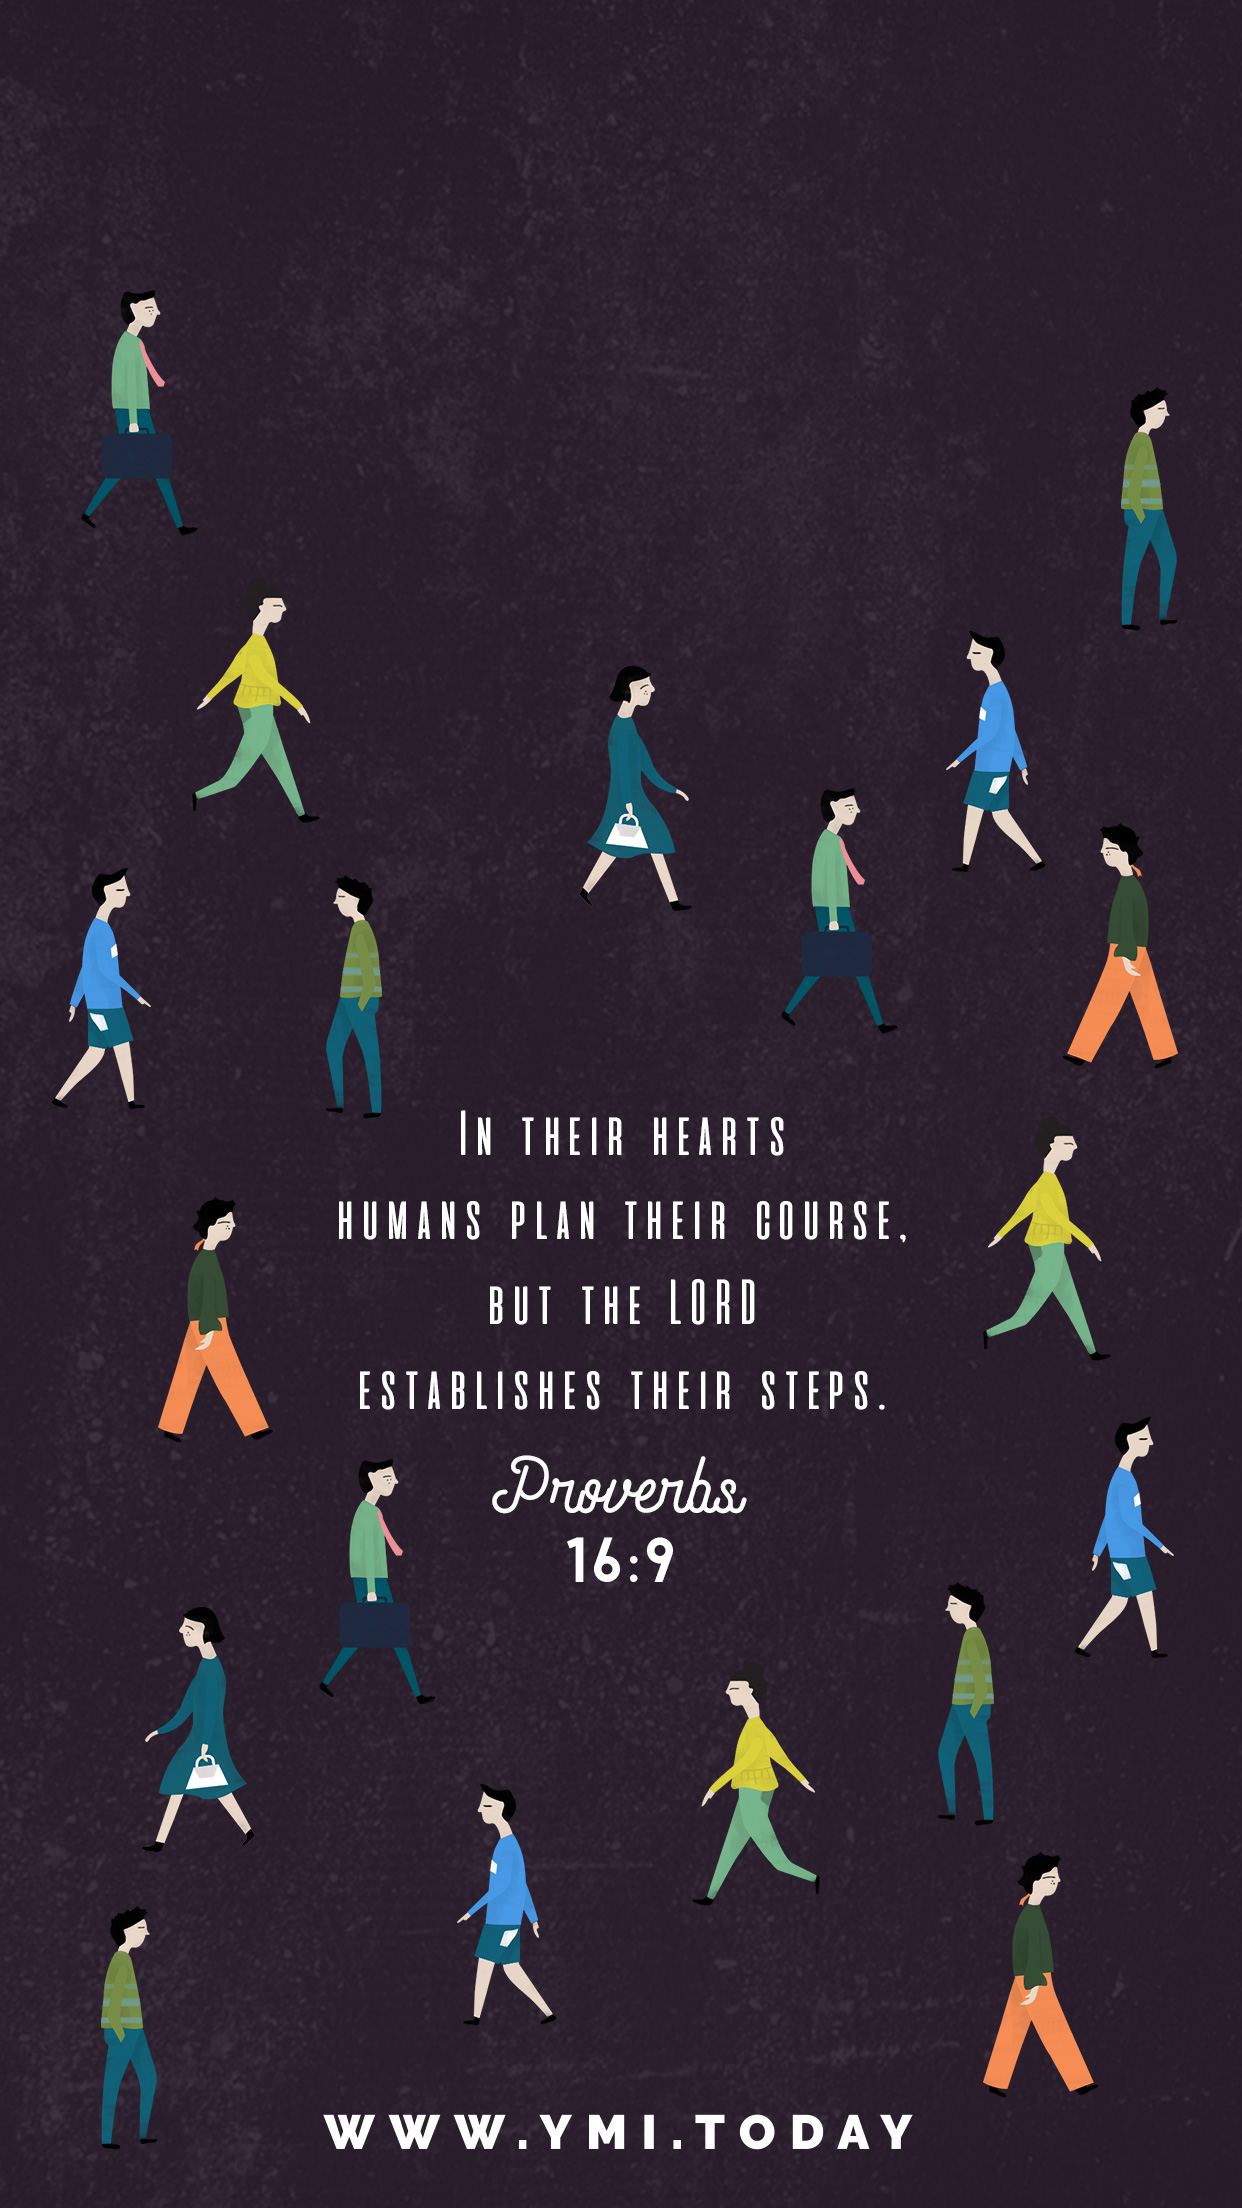 YMI August 2017 Phone Lockscreen - In their hearts humans plan their course. But the Lord establishes their steps. - Proverbs 16:9